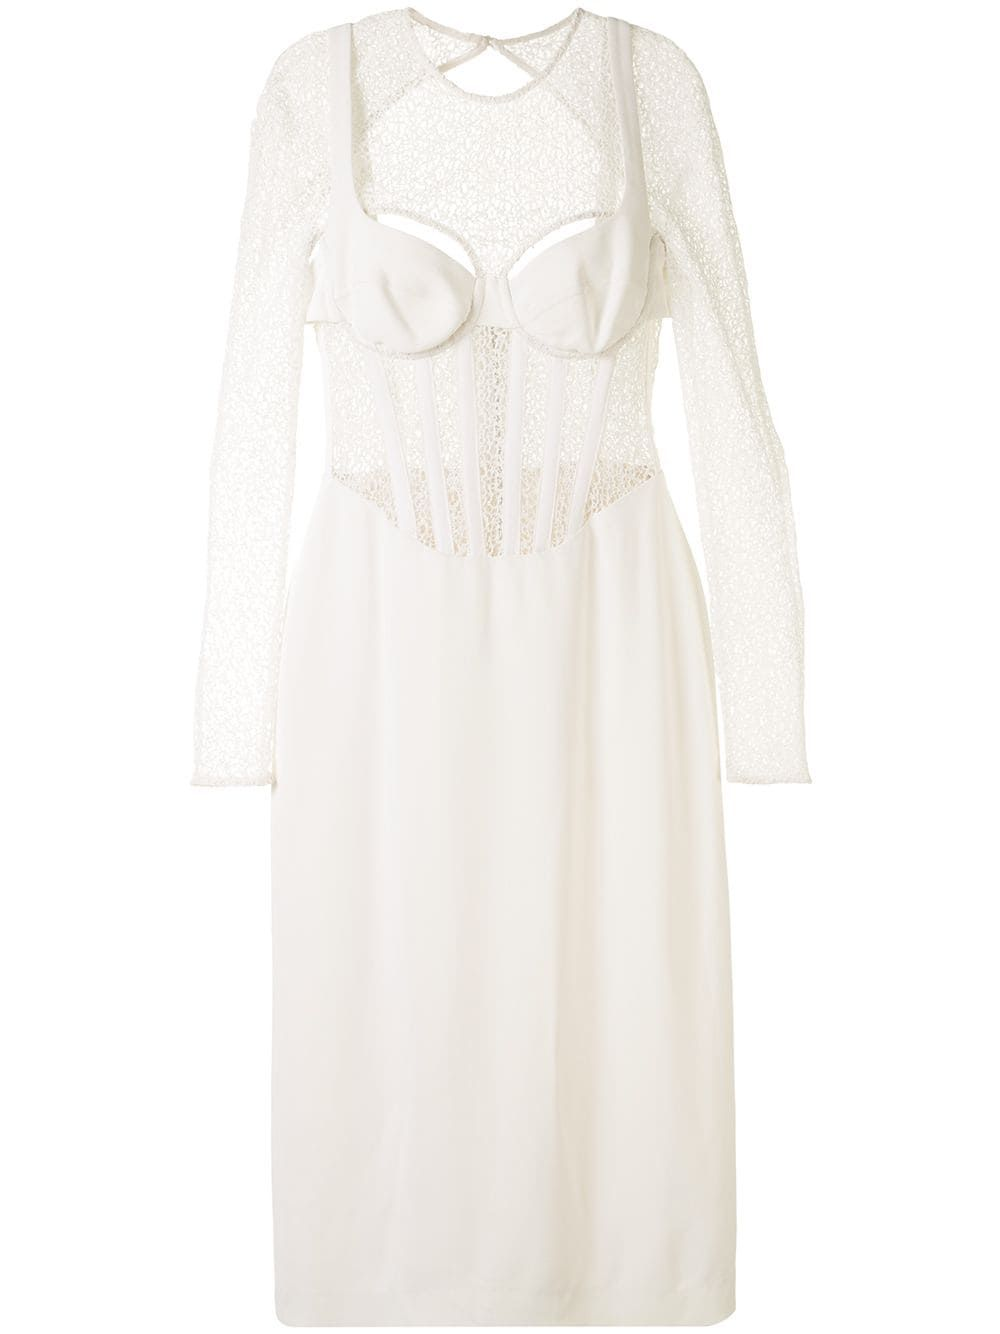 White stretch-crepe corset-style midi dress from DION LEE featuring panelled design, open back and rear zip fastening.